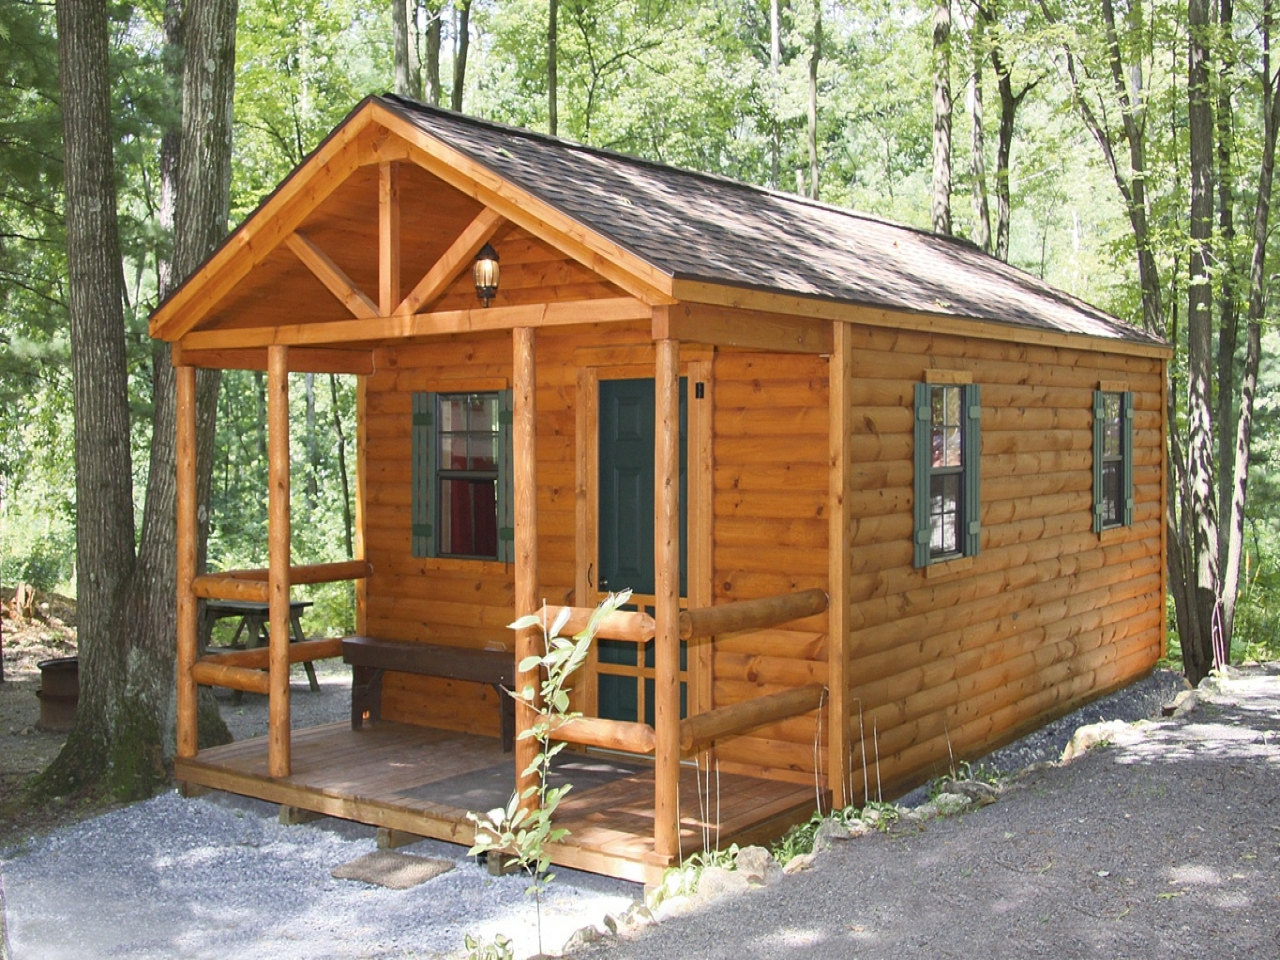 Prefab Hunting Cabins Small Modular Cabins And Cottages